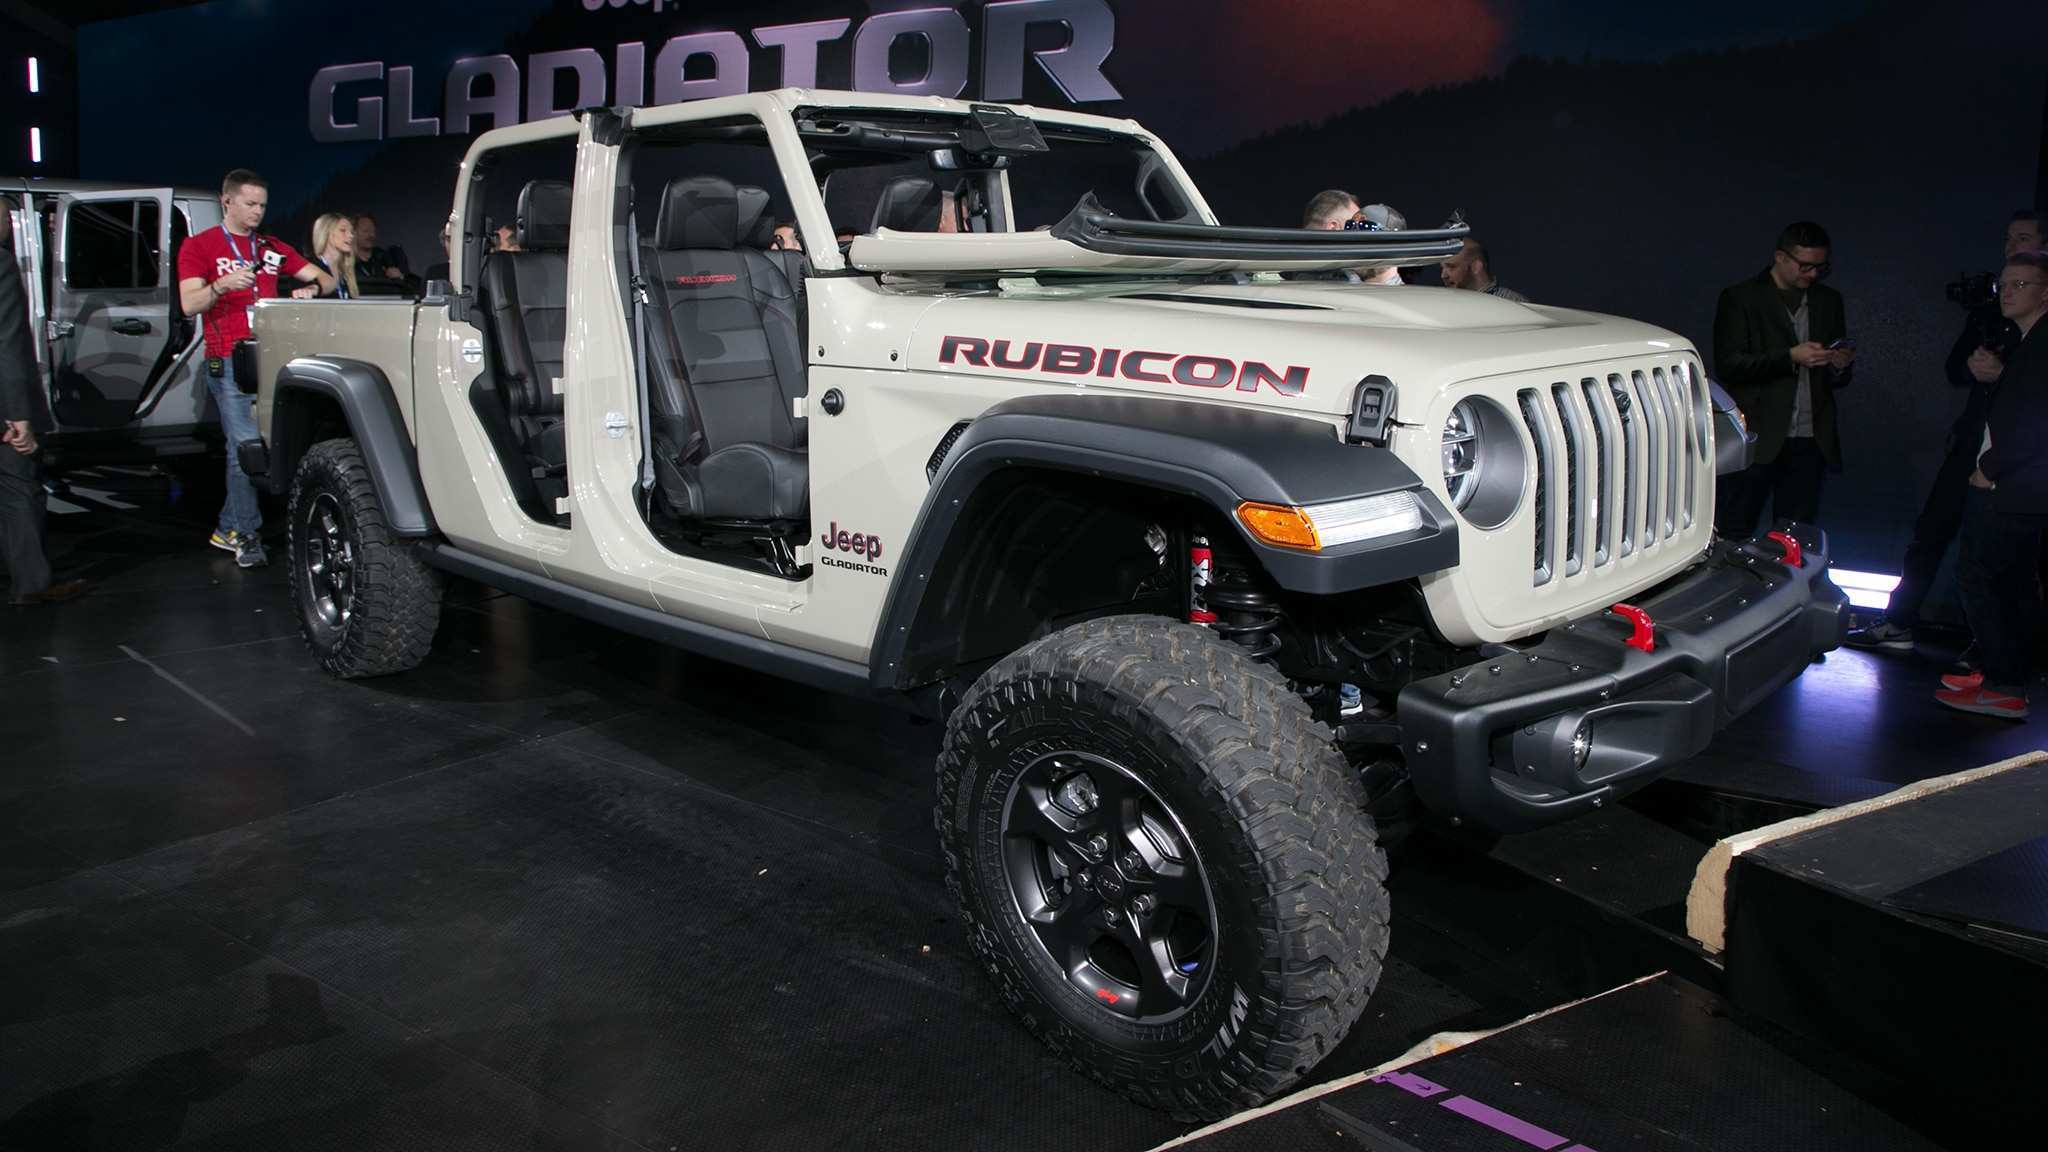 41 All New New Jeep 2019 Vehicles Spy Shoot Style with New Jeep 2019 Vehicles Spy Shoot